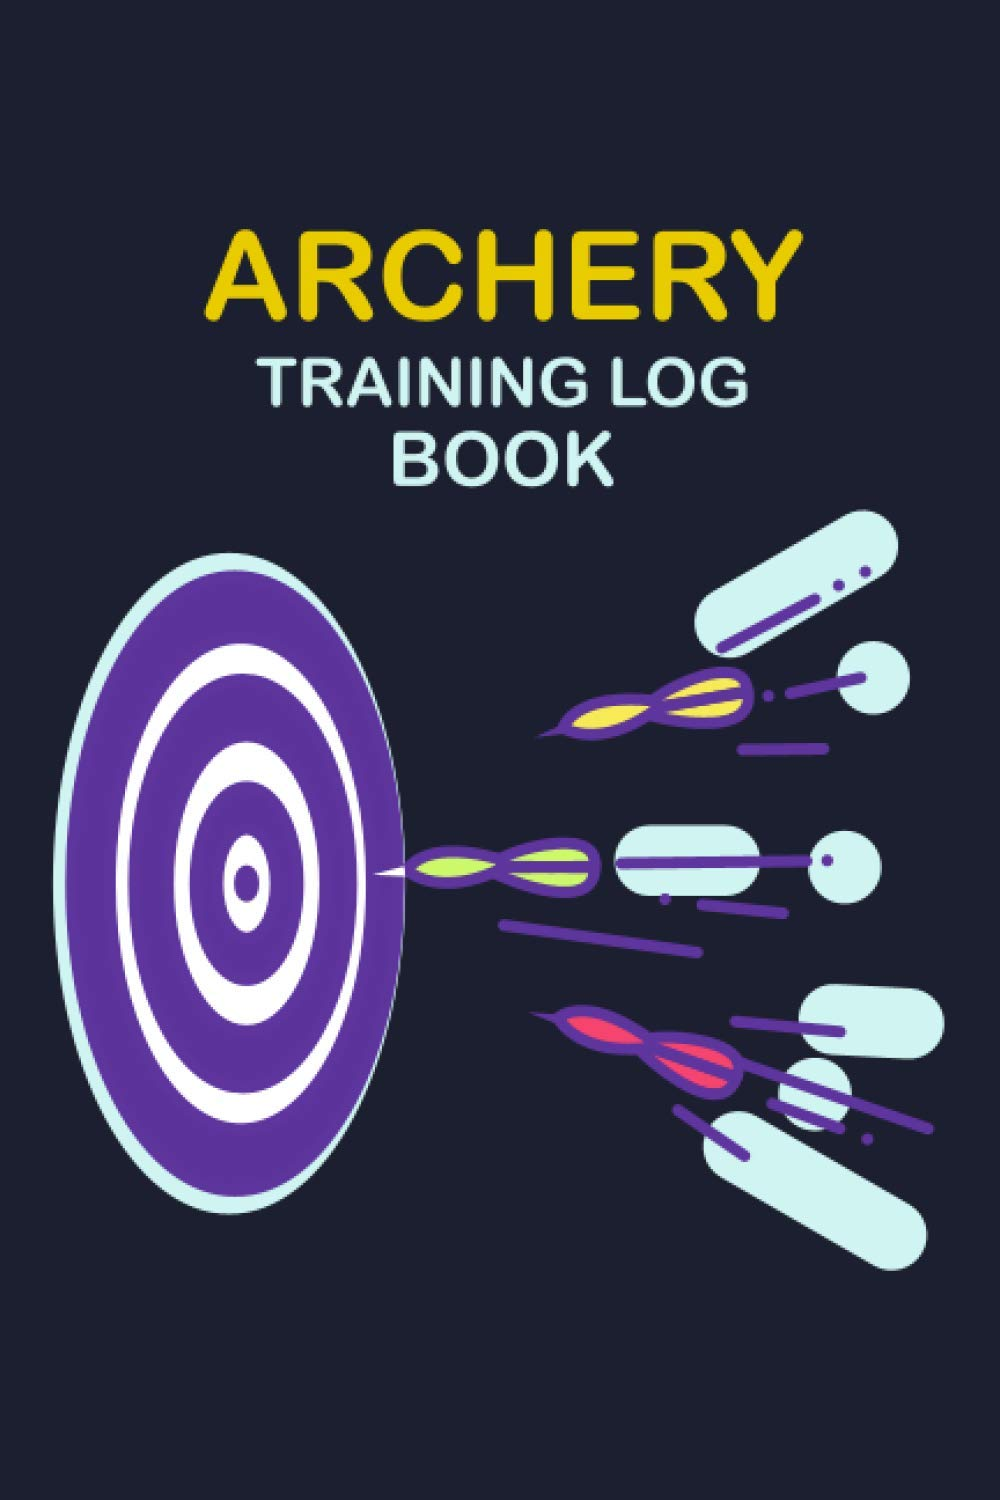 Archery Training Log Book: Sport Archery Training Notebook , Archery For Beginners Score Logbook journals, Sports and Outdoors Bowhunting Notebook, Delightful Notebook For You